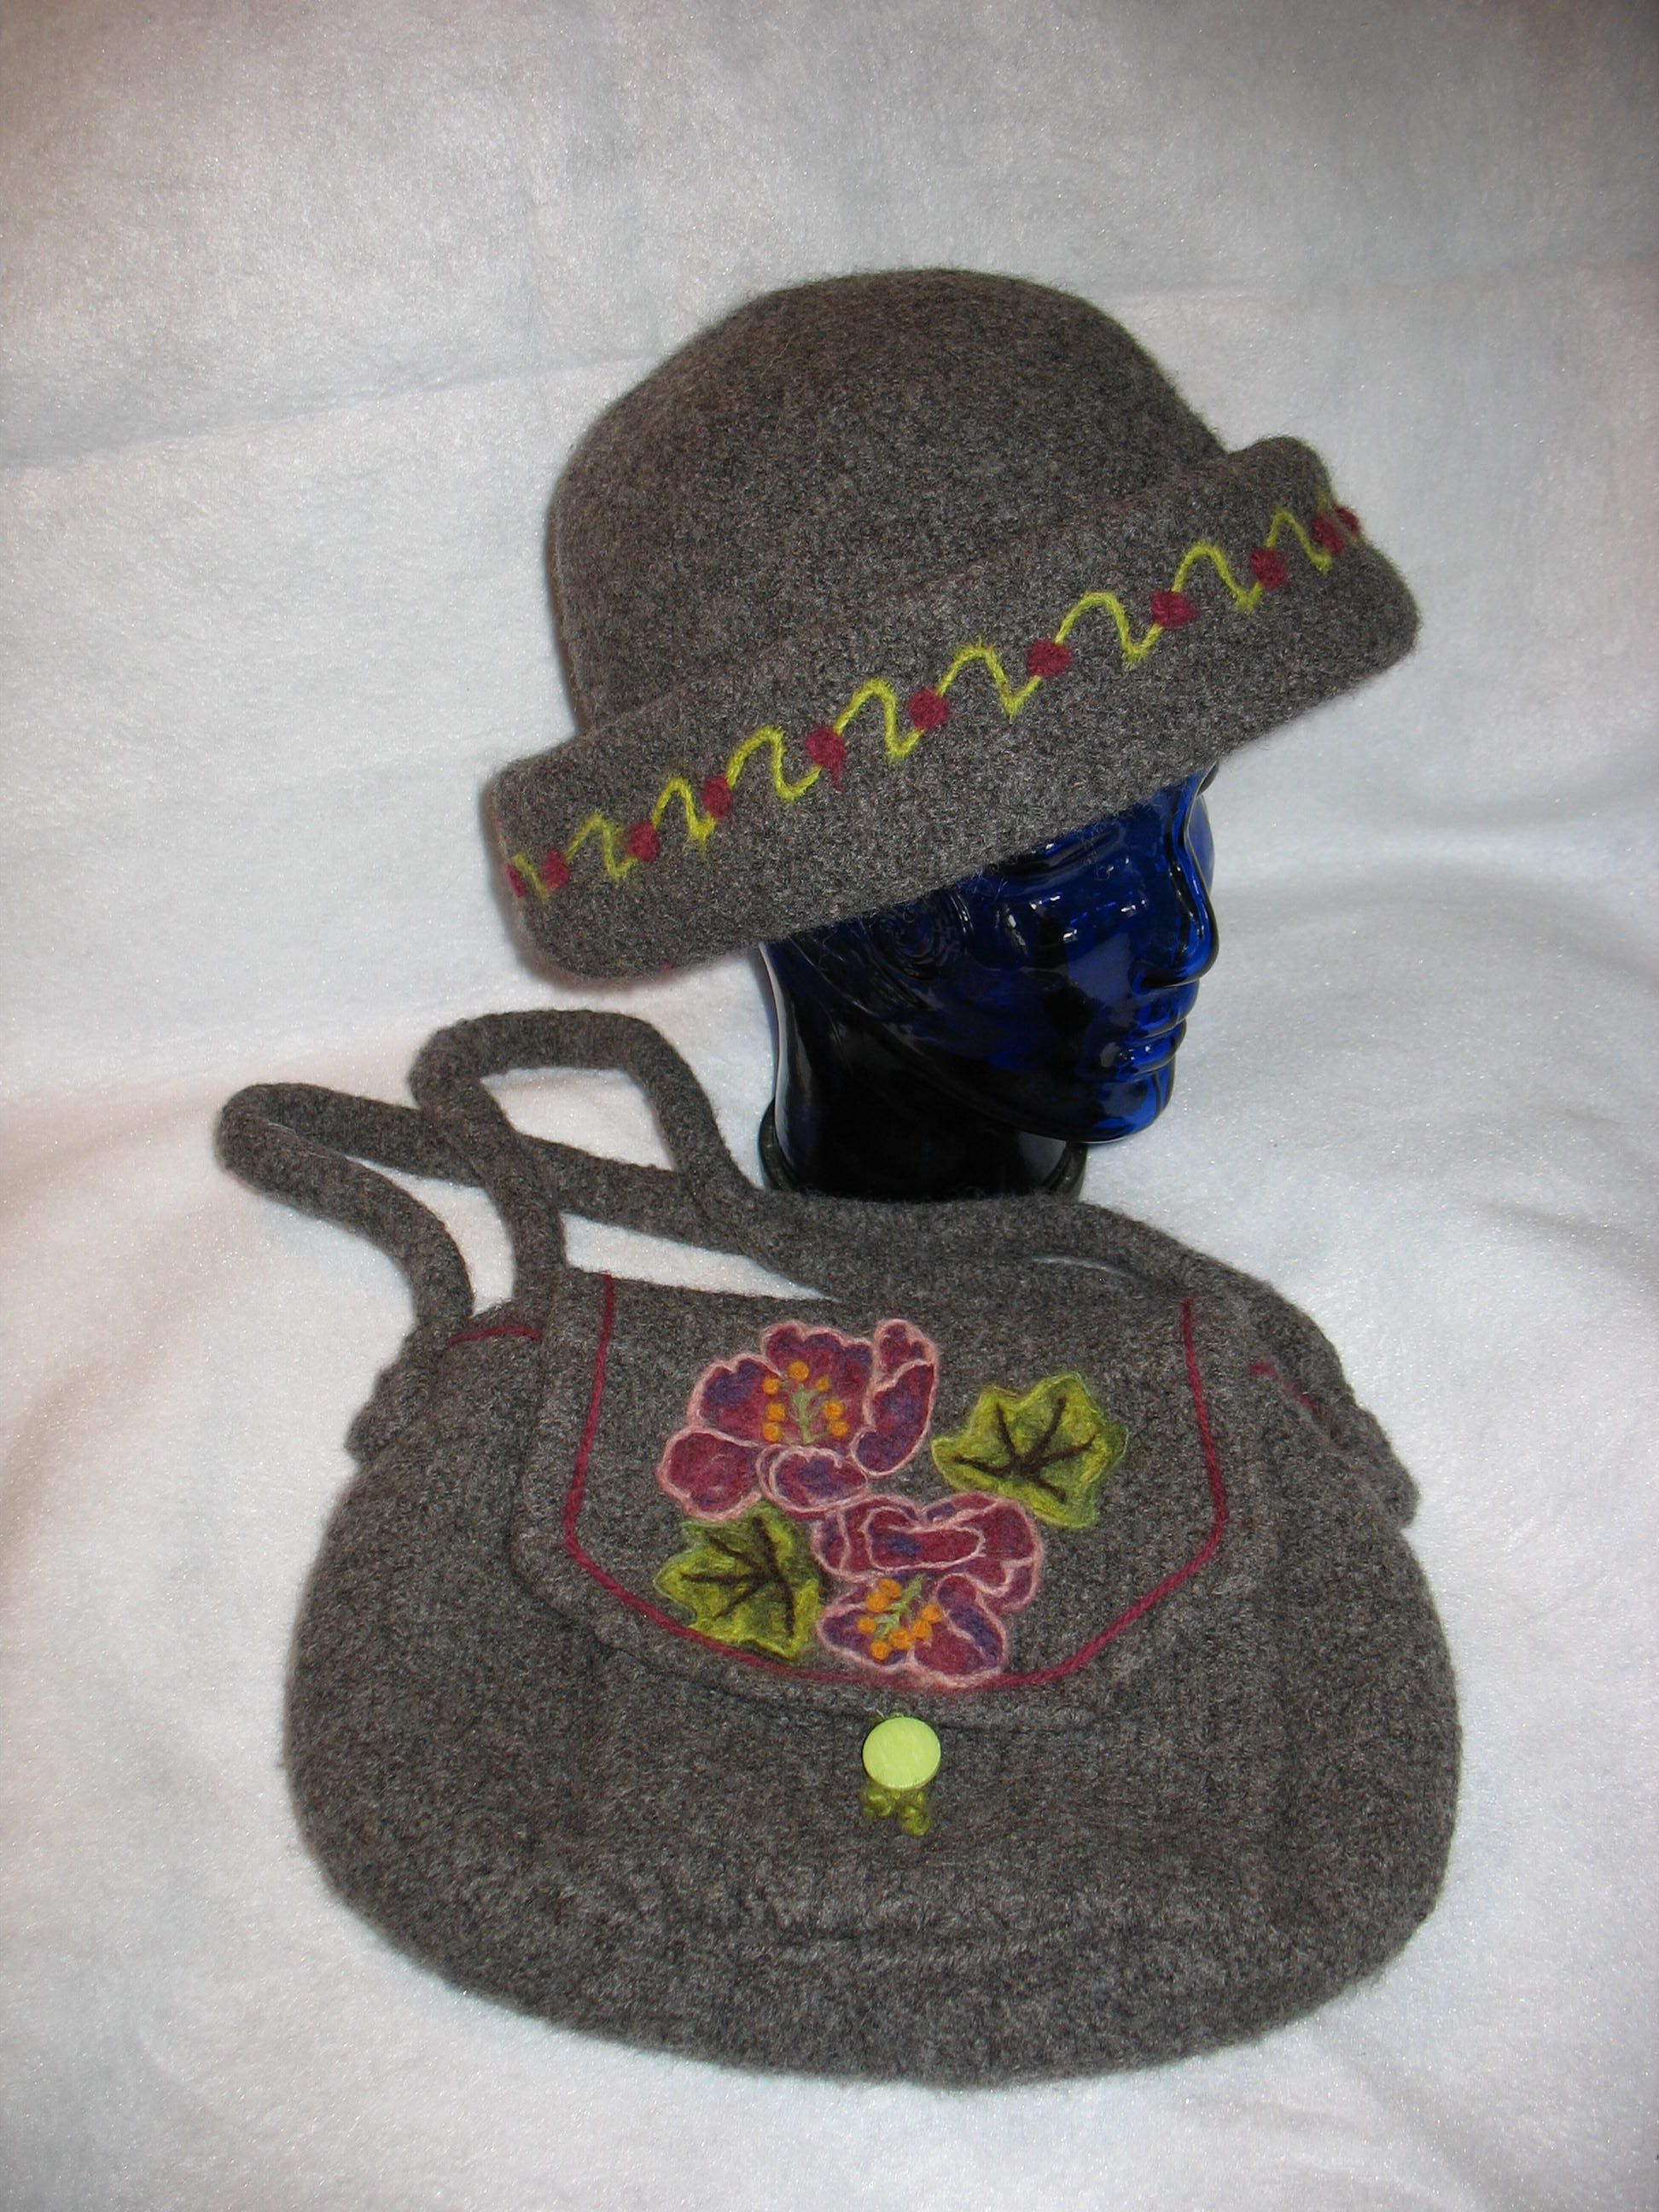 Knit-felted hat and bag.Had a pattern for hat but improvised bag ...